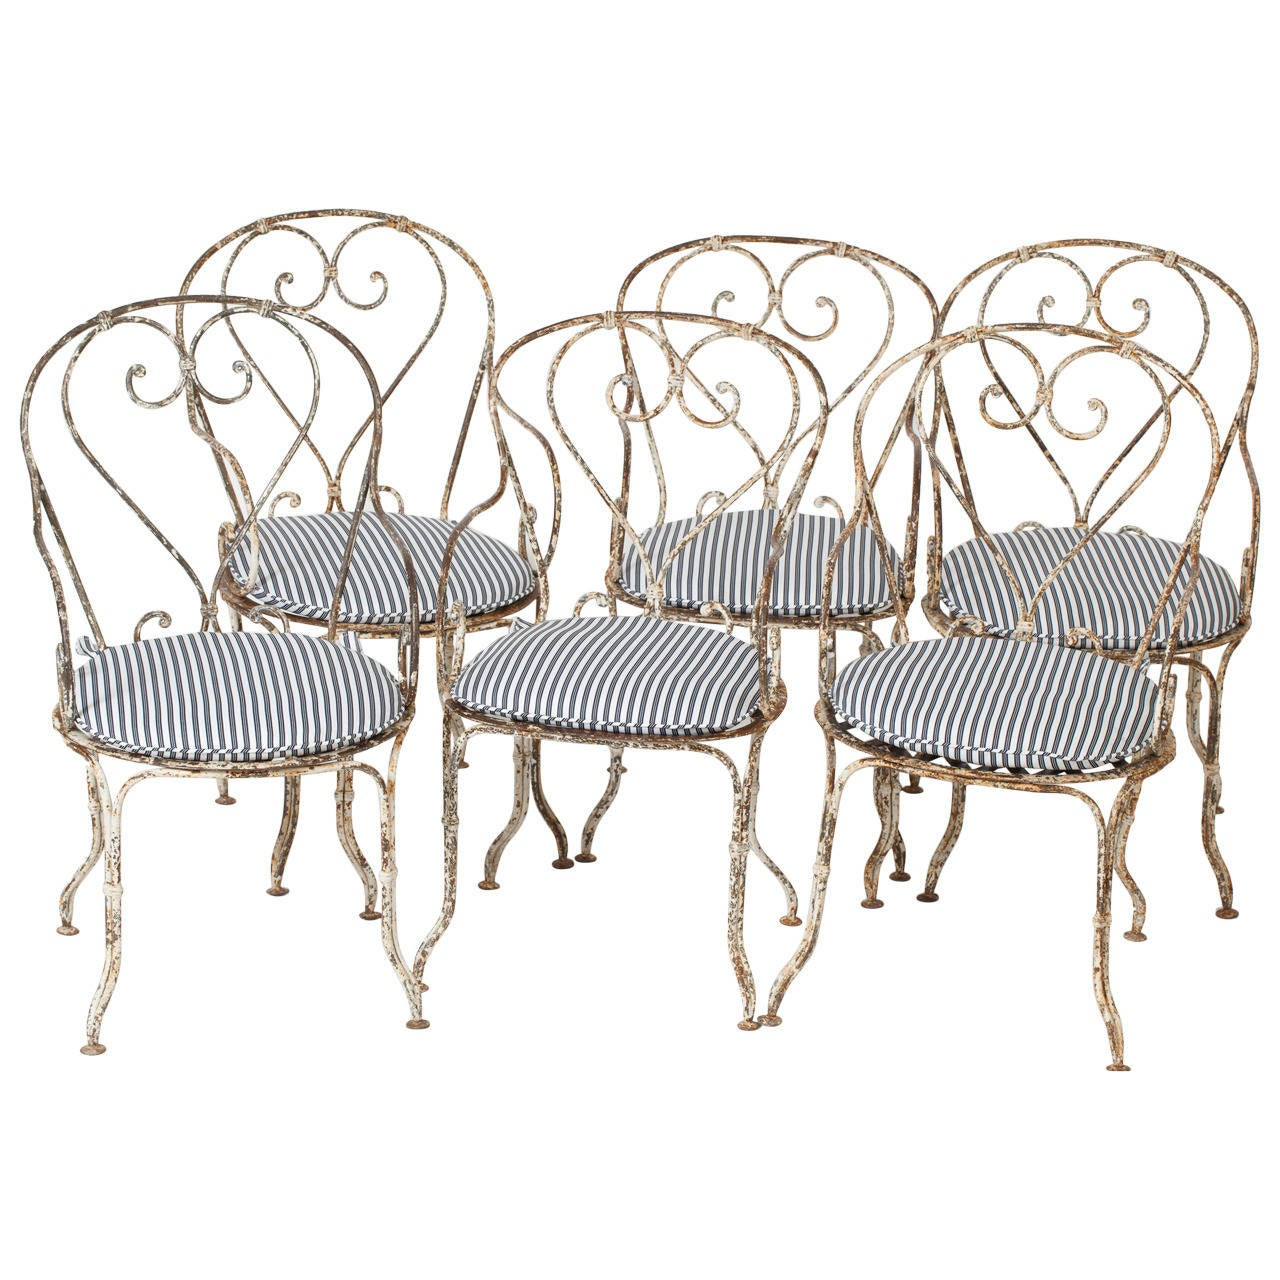 A Set Of Six French Antique Wrought Iron Garden Chairs